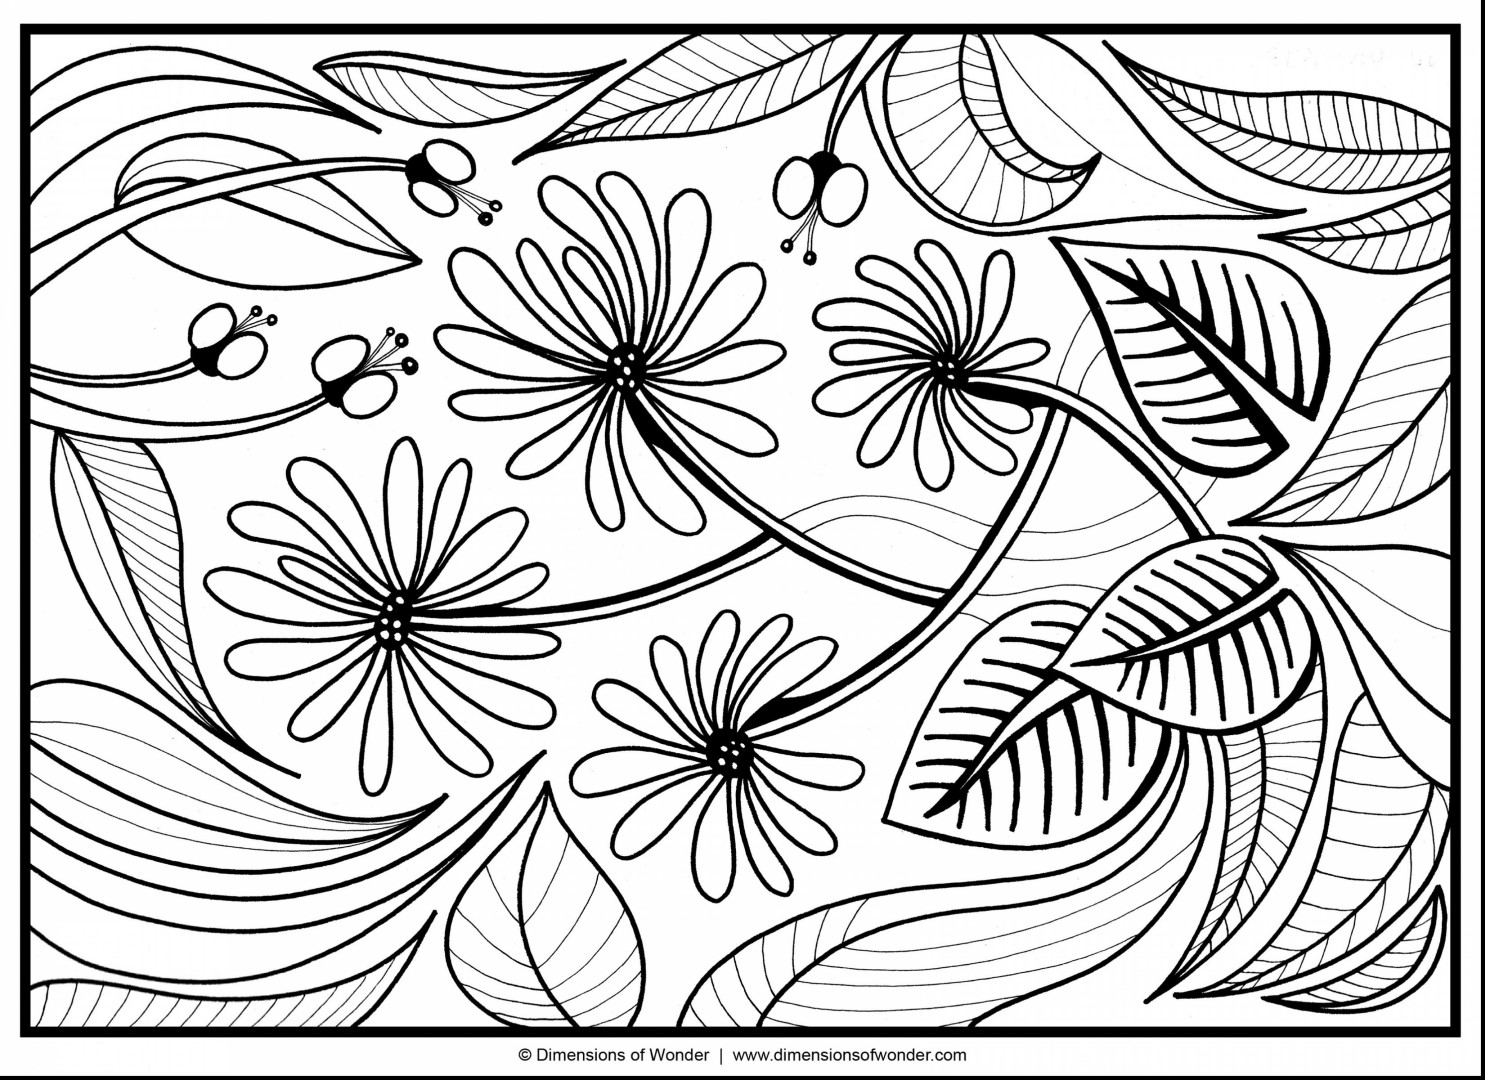 Windy Flower Coloring Pages